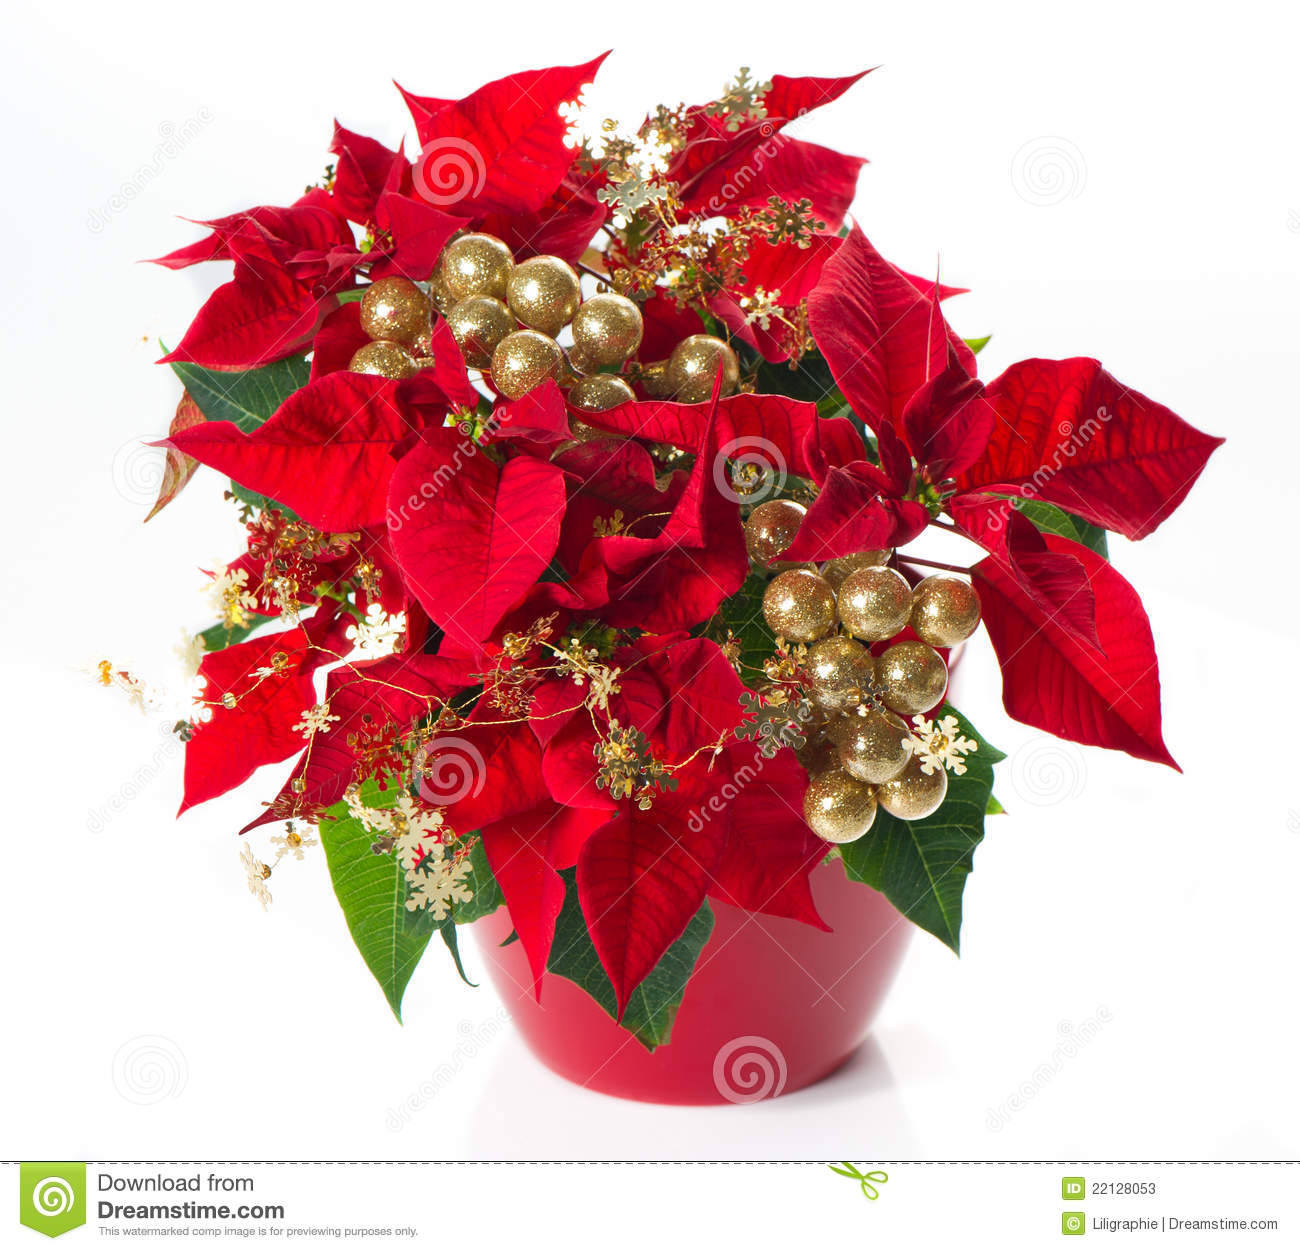 red poinsettia christmas flower with golden deco stock image image 22128053. Black Bedroom Furniture Sets. Home Design Ideas